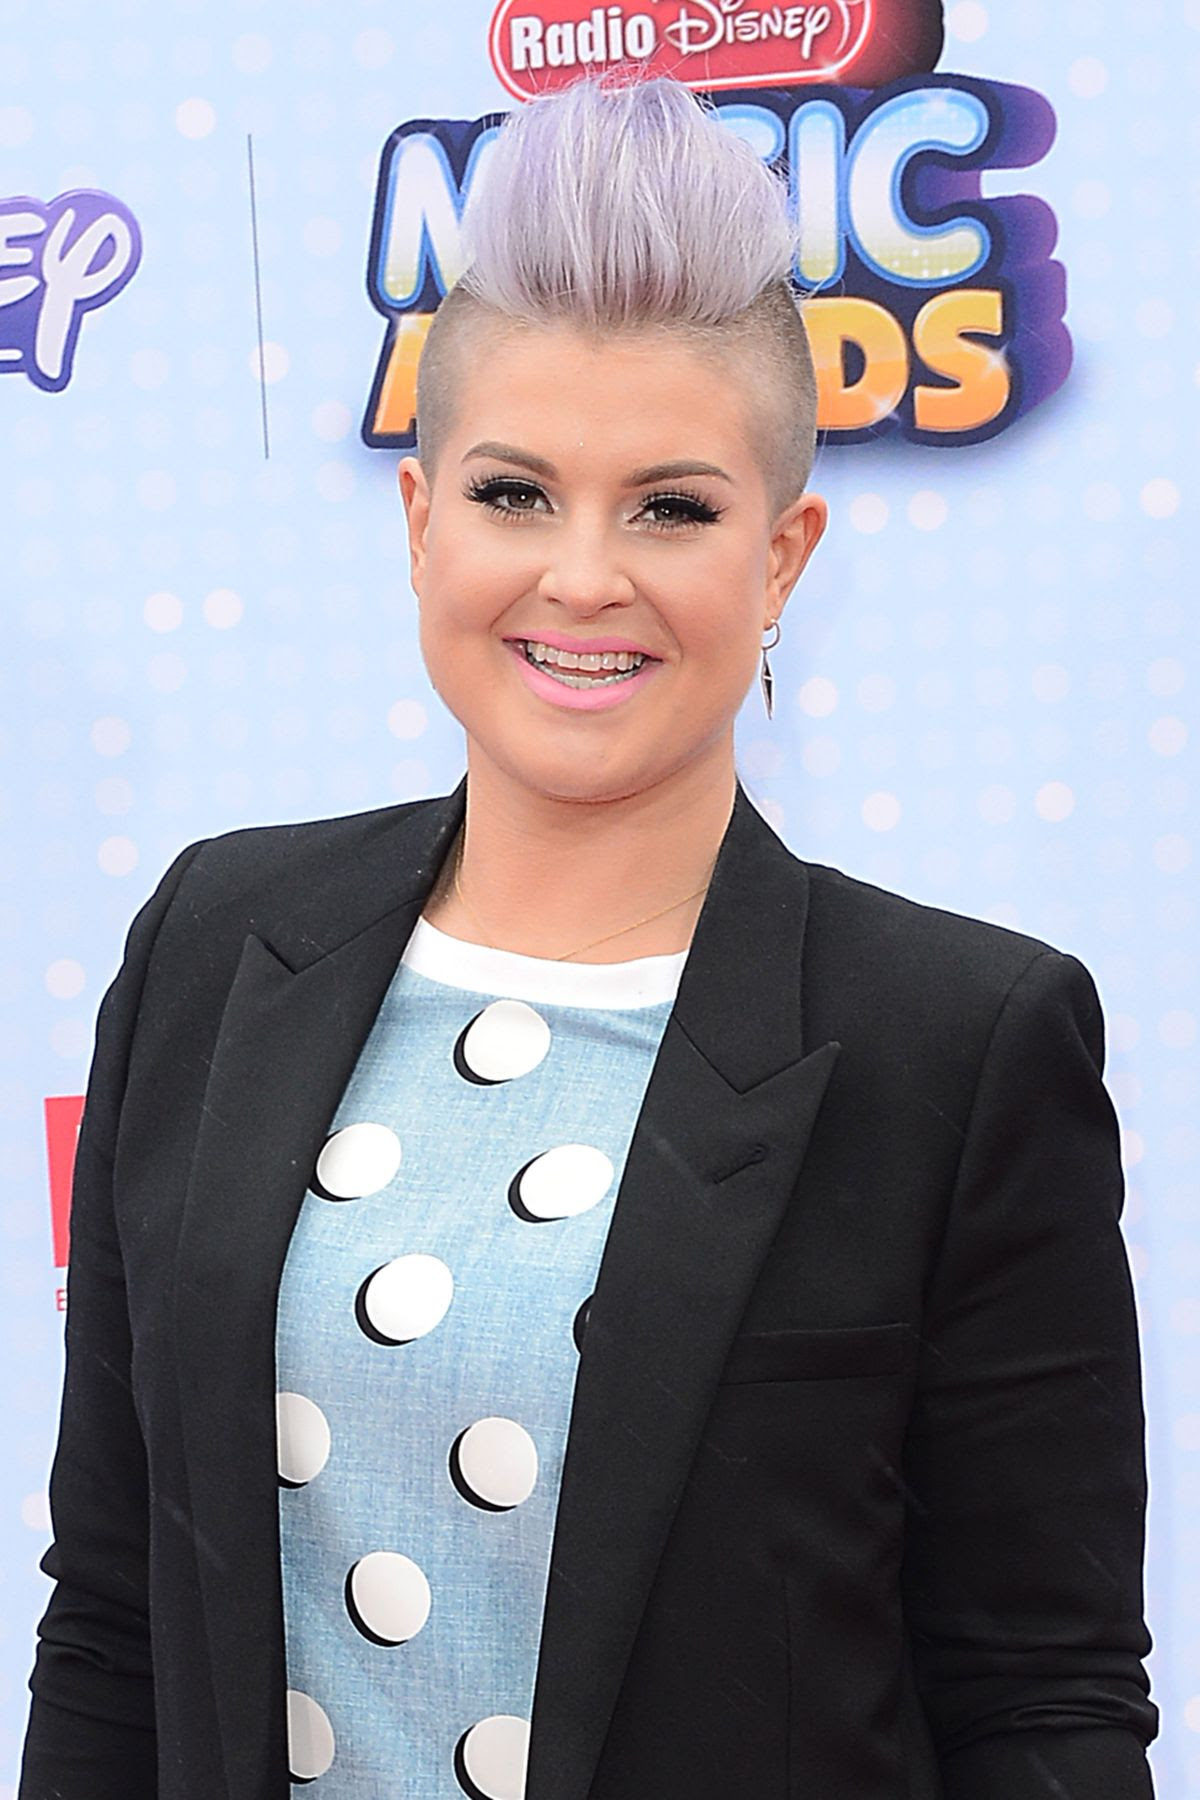 KELLY OSBOURNE at 2015 Radio Disney Music Awards in Los Angeles